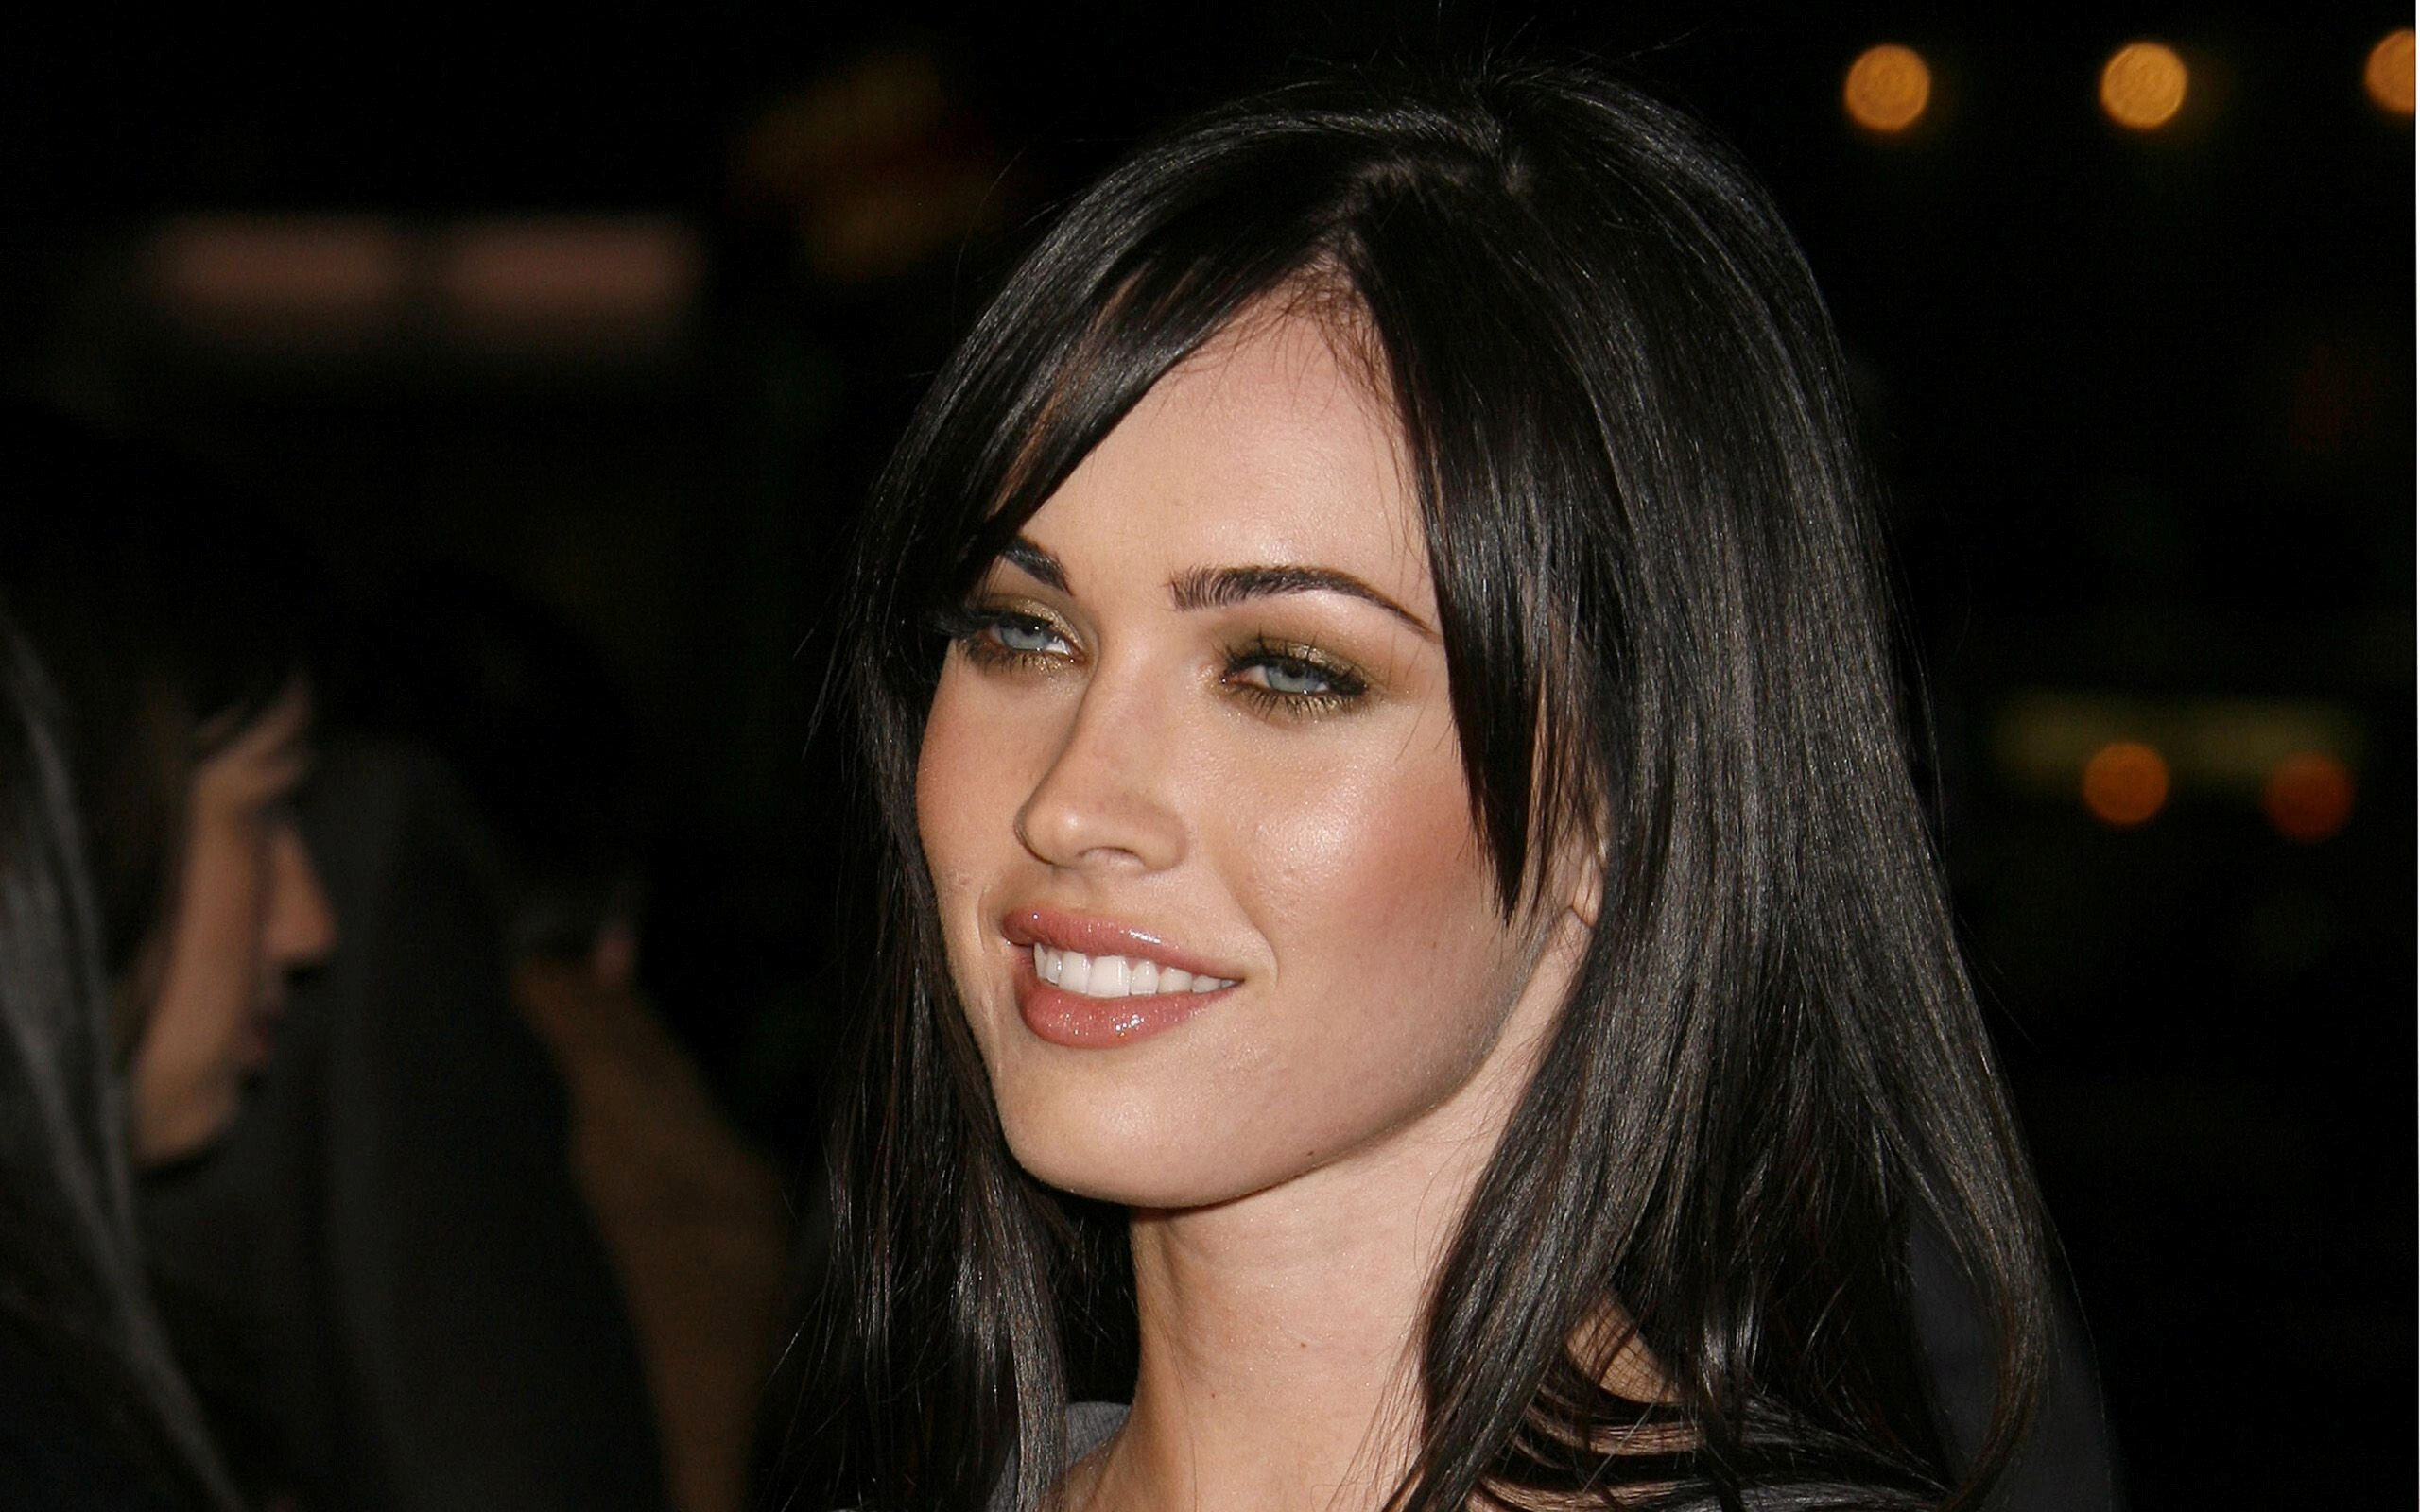 pretty cute hollywood actress megan fox hd wallpapers | hd wallpapers